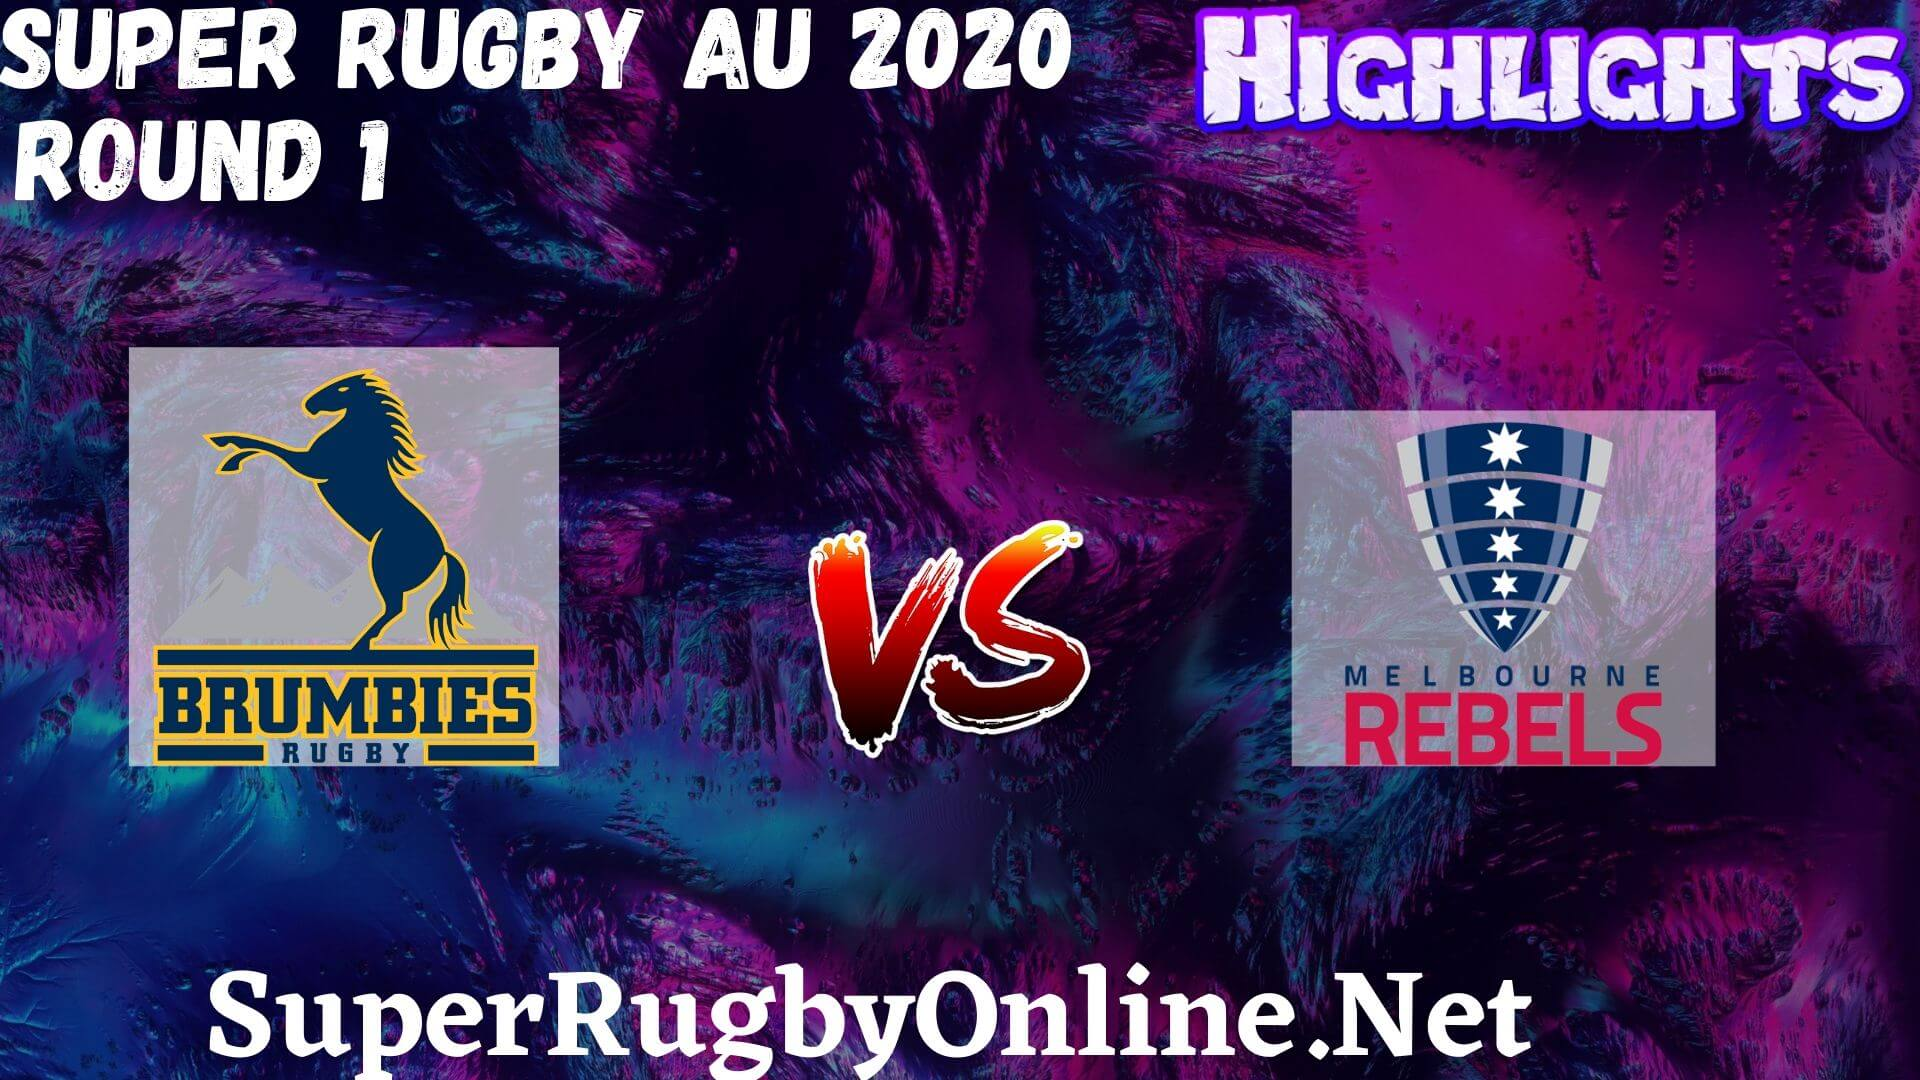 Brumbies Vs Rebels Rd 1 Highlights 2020